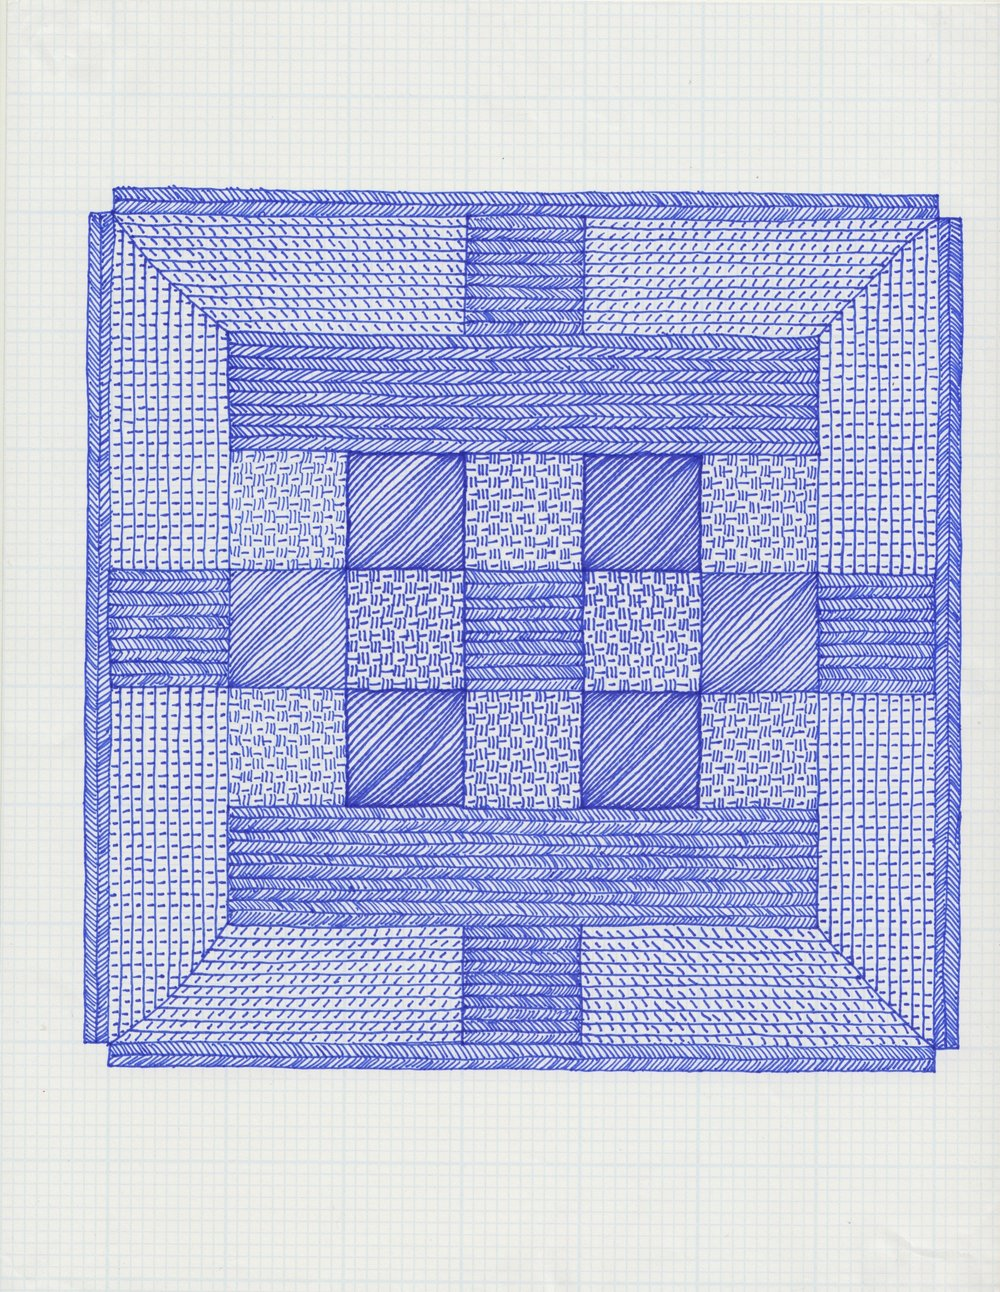 2016, Pen on graph paper, 8.5 x 11 inches